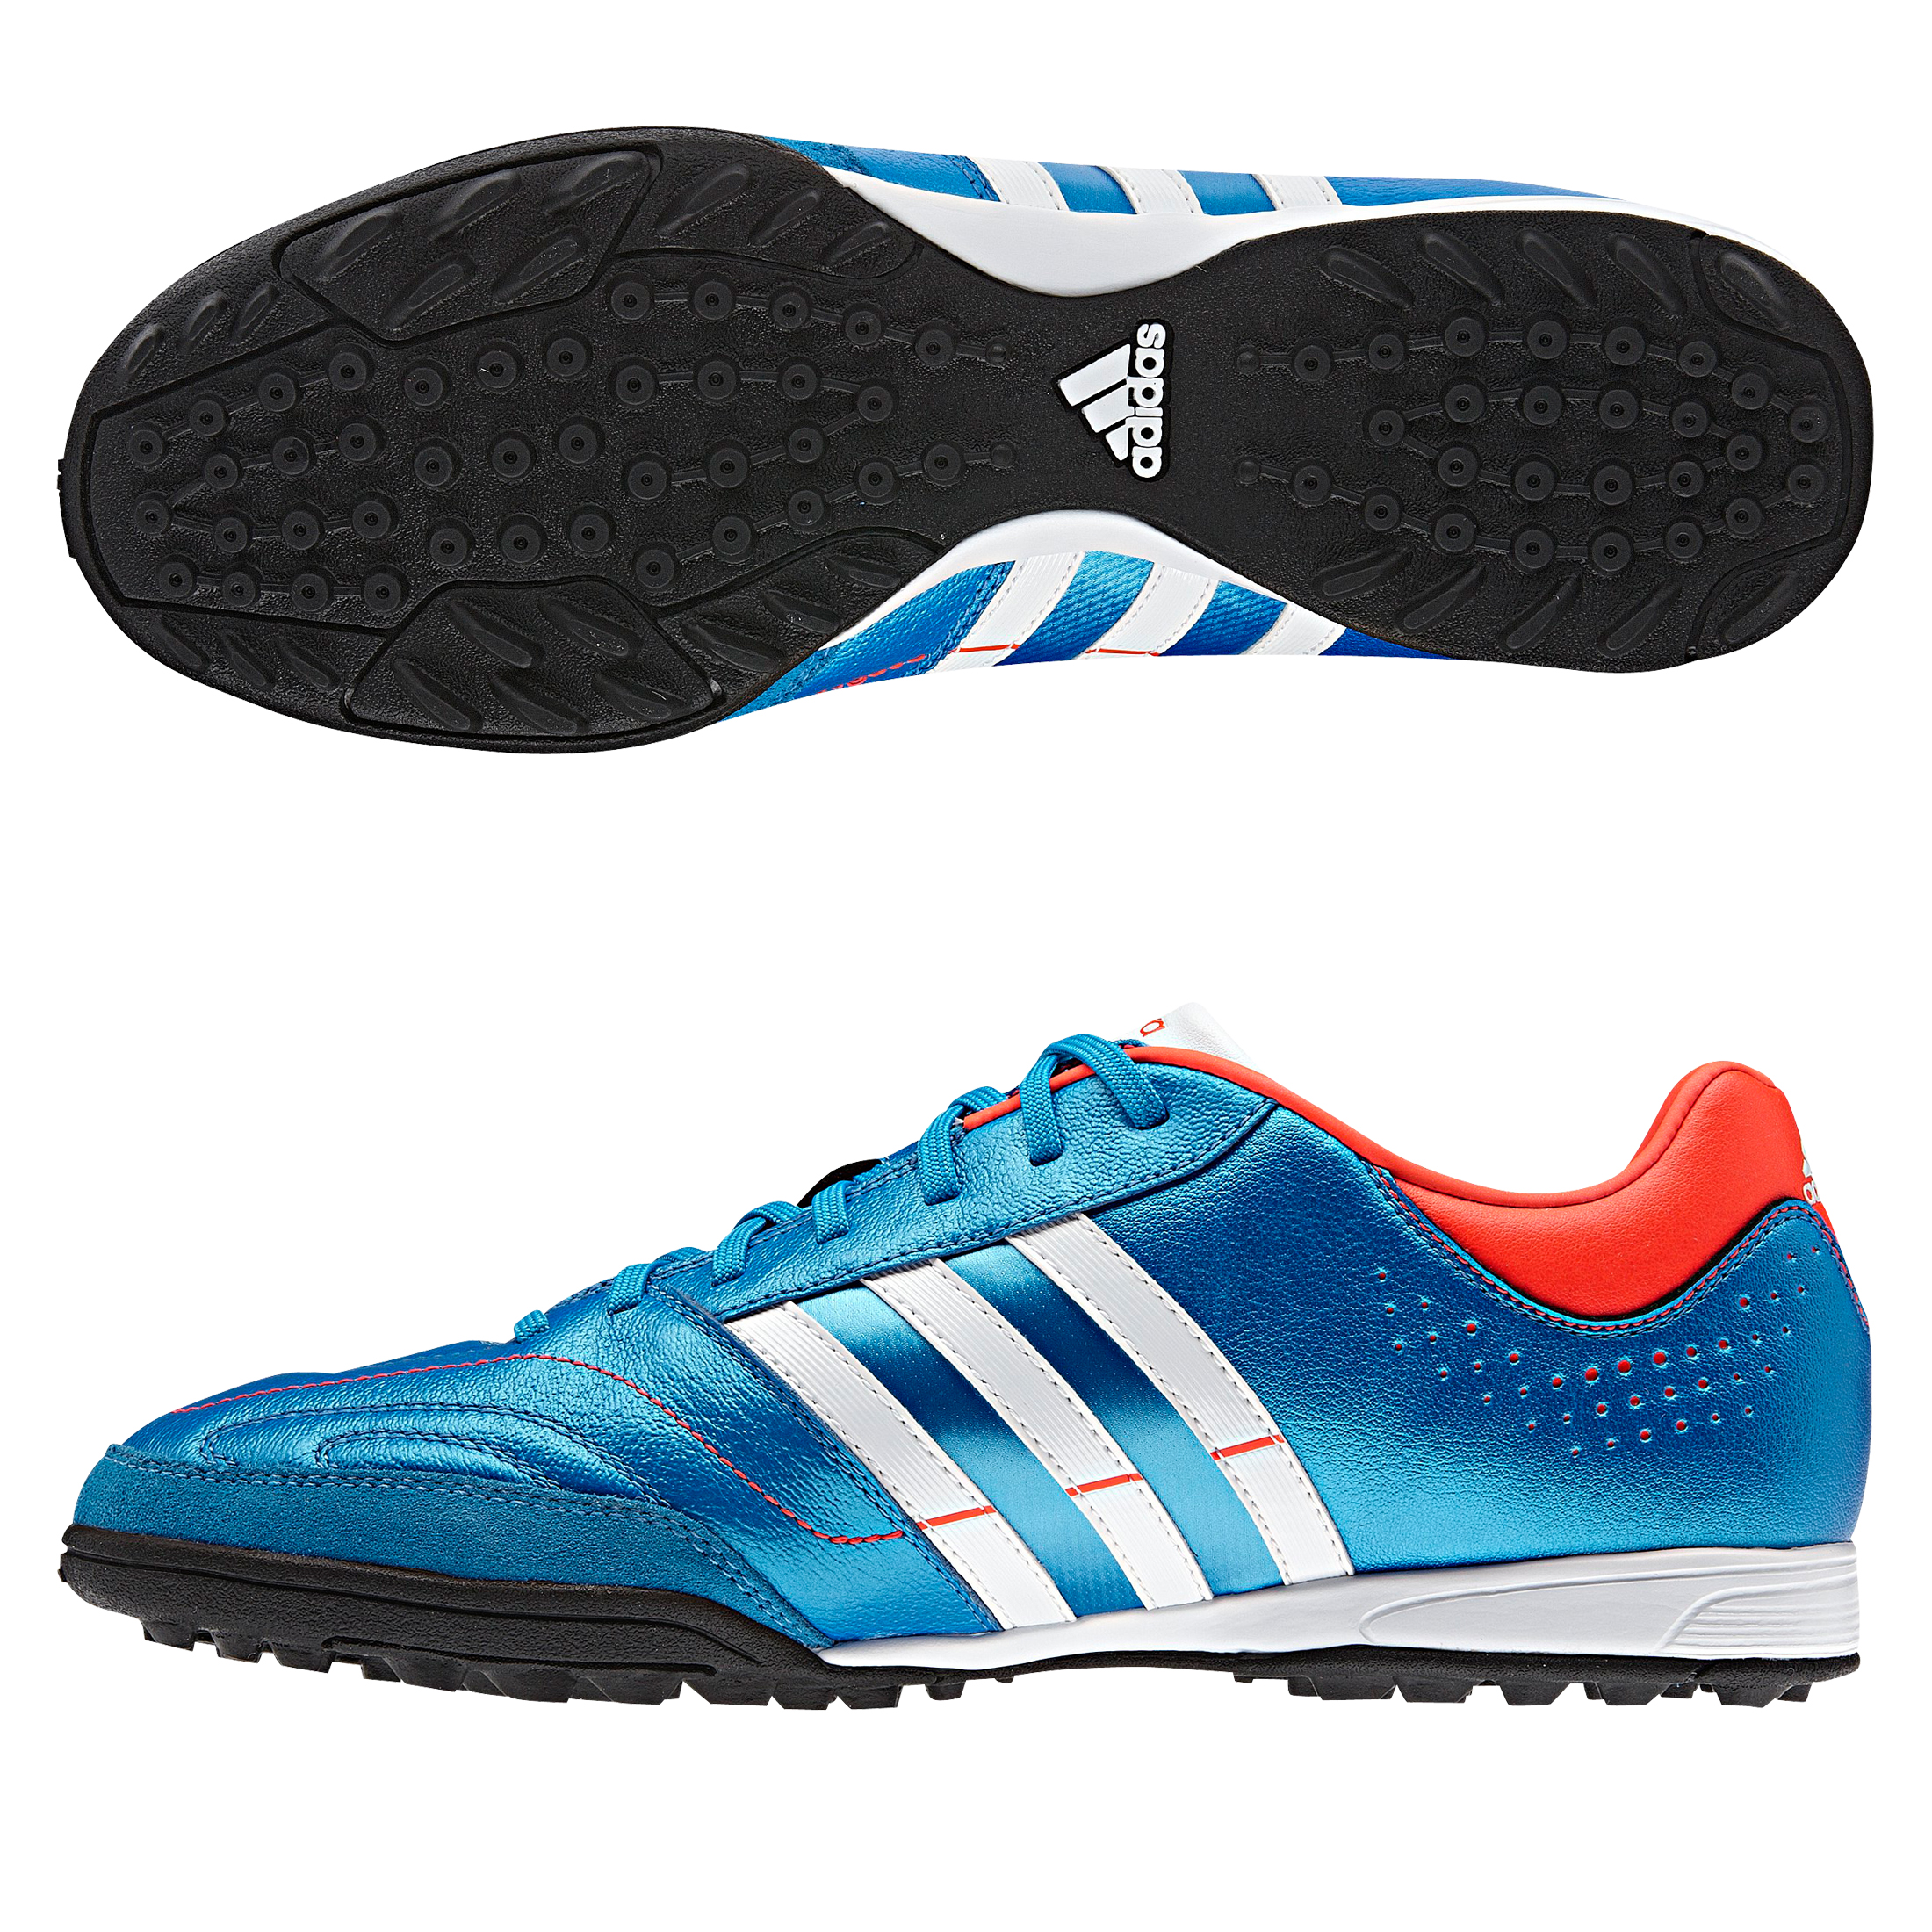 Adidas 11Nova TRX Astro Turf Trainers - Bright Blue/Running White/Infrared